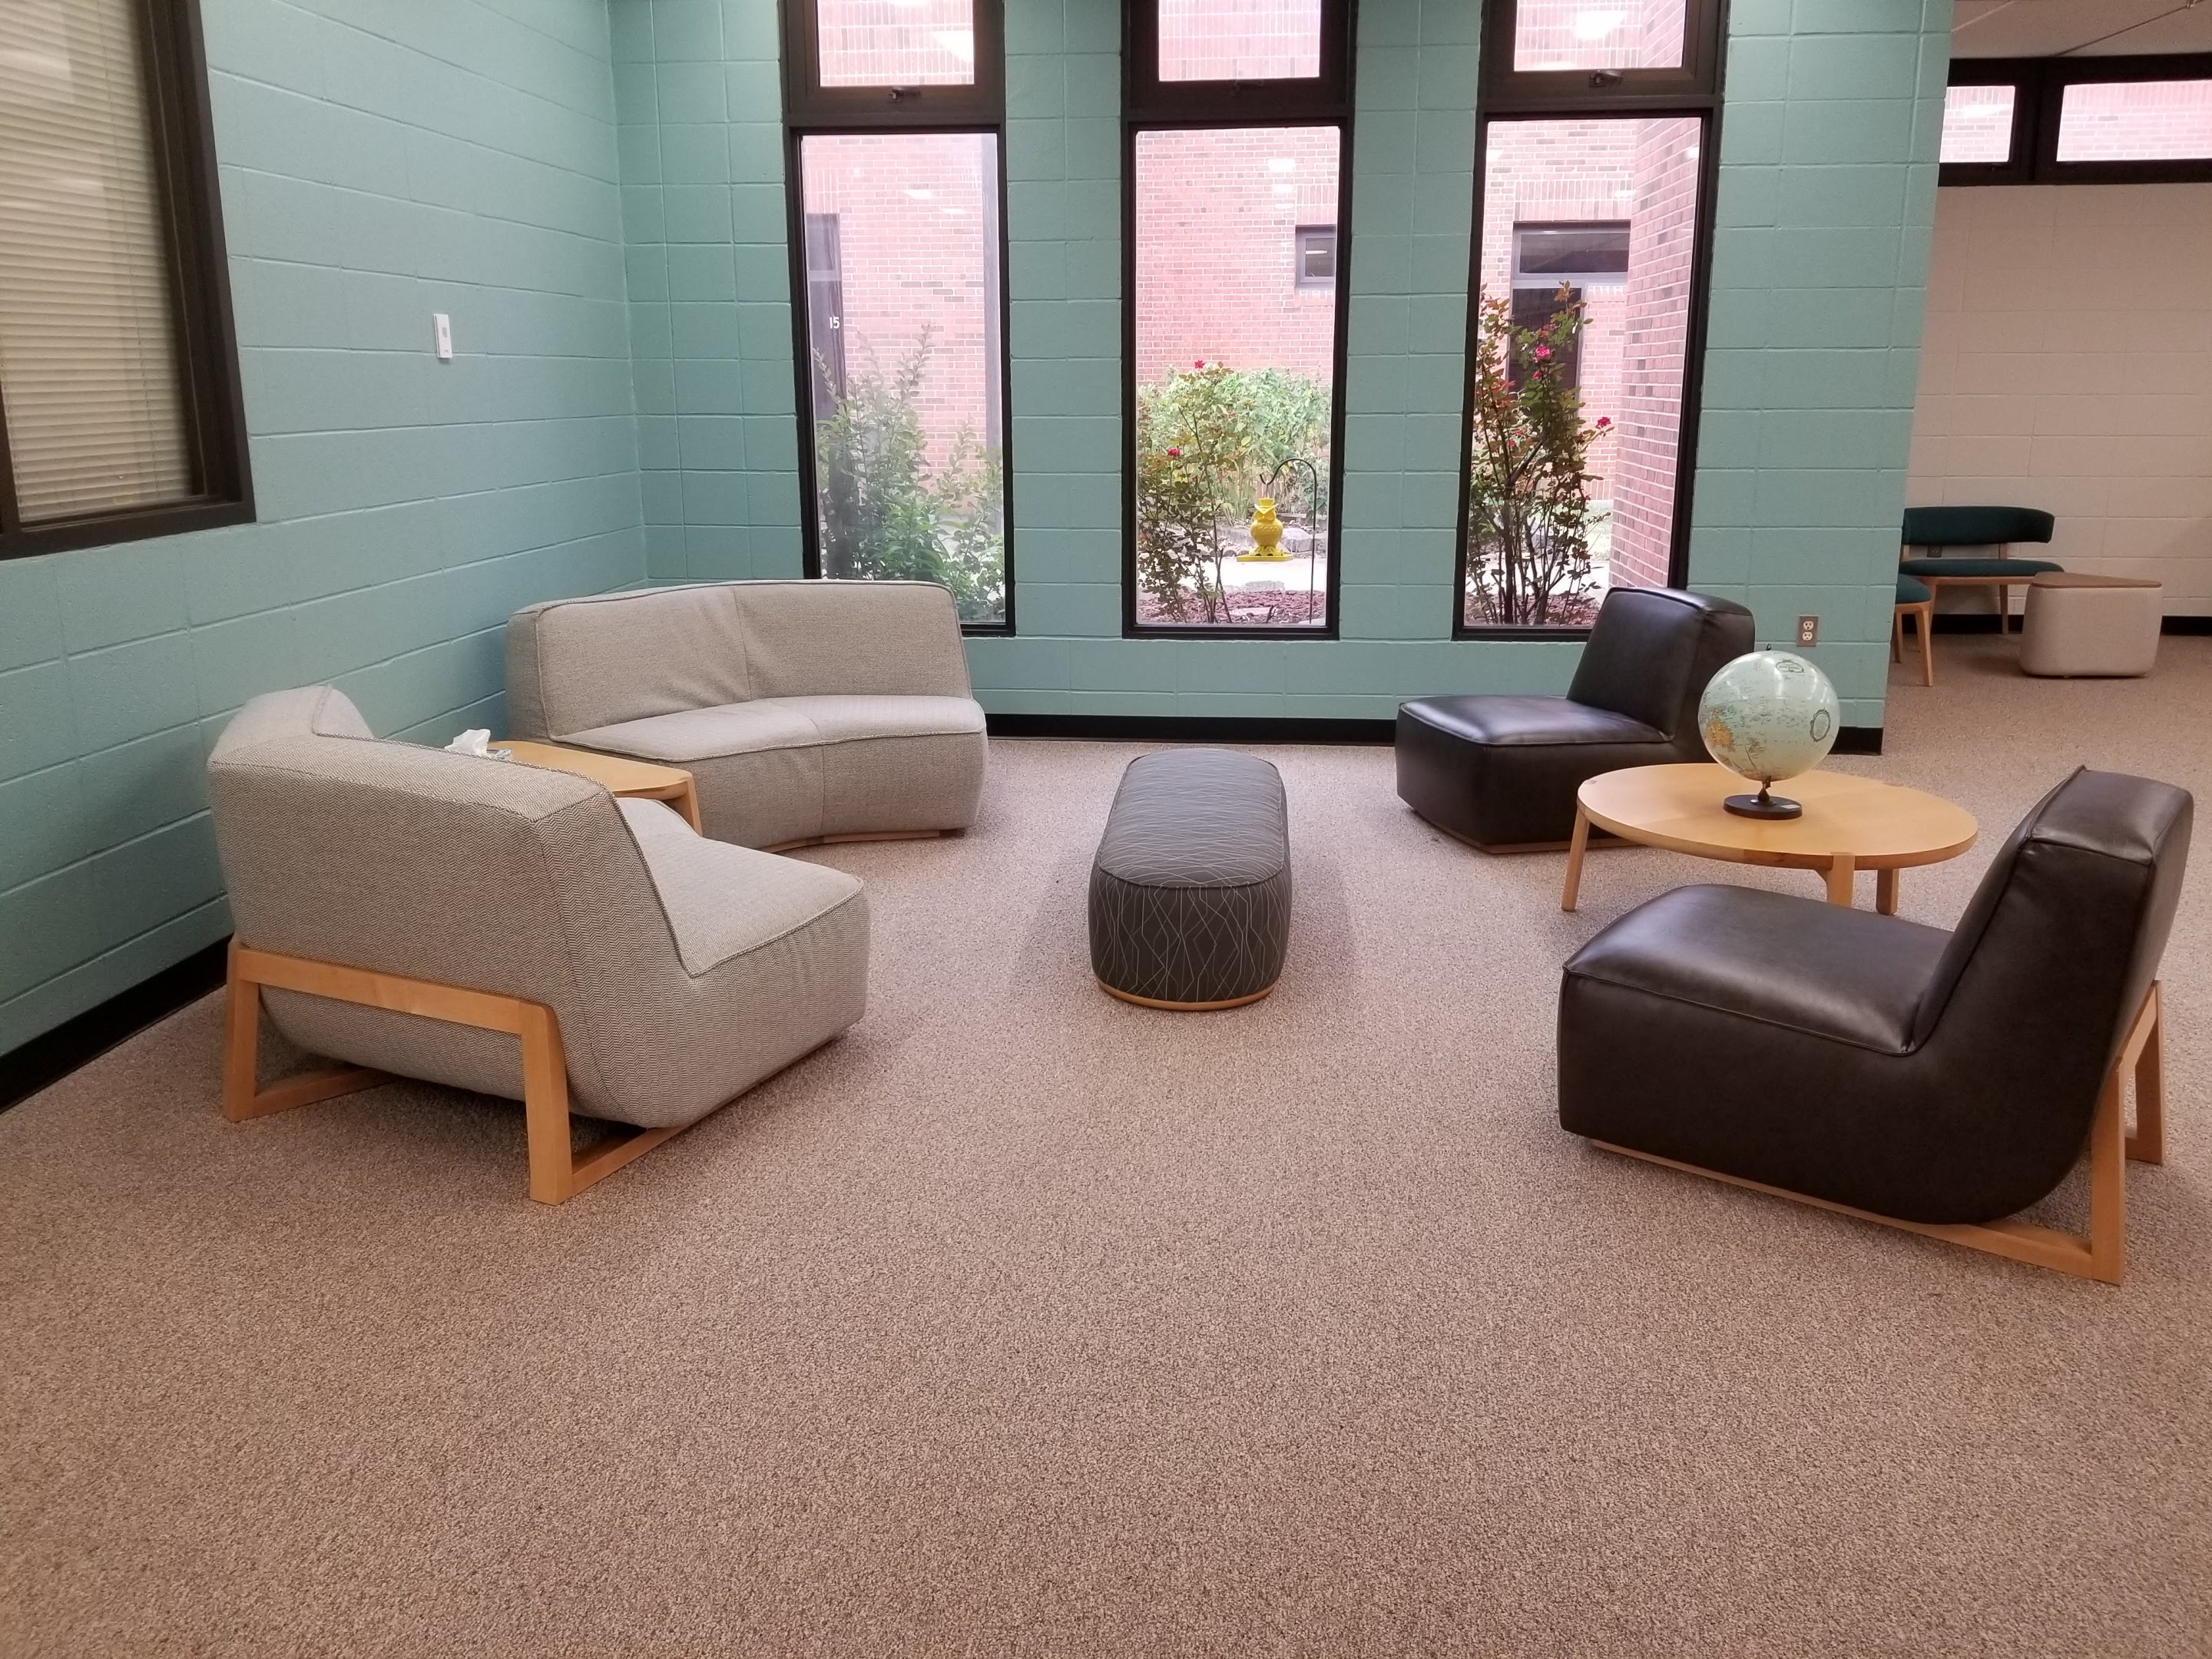 Seating area in library with view of garden